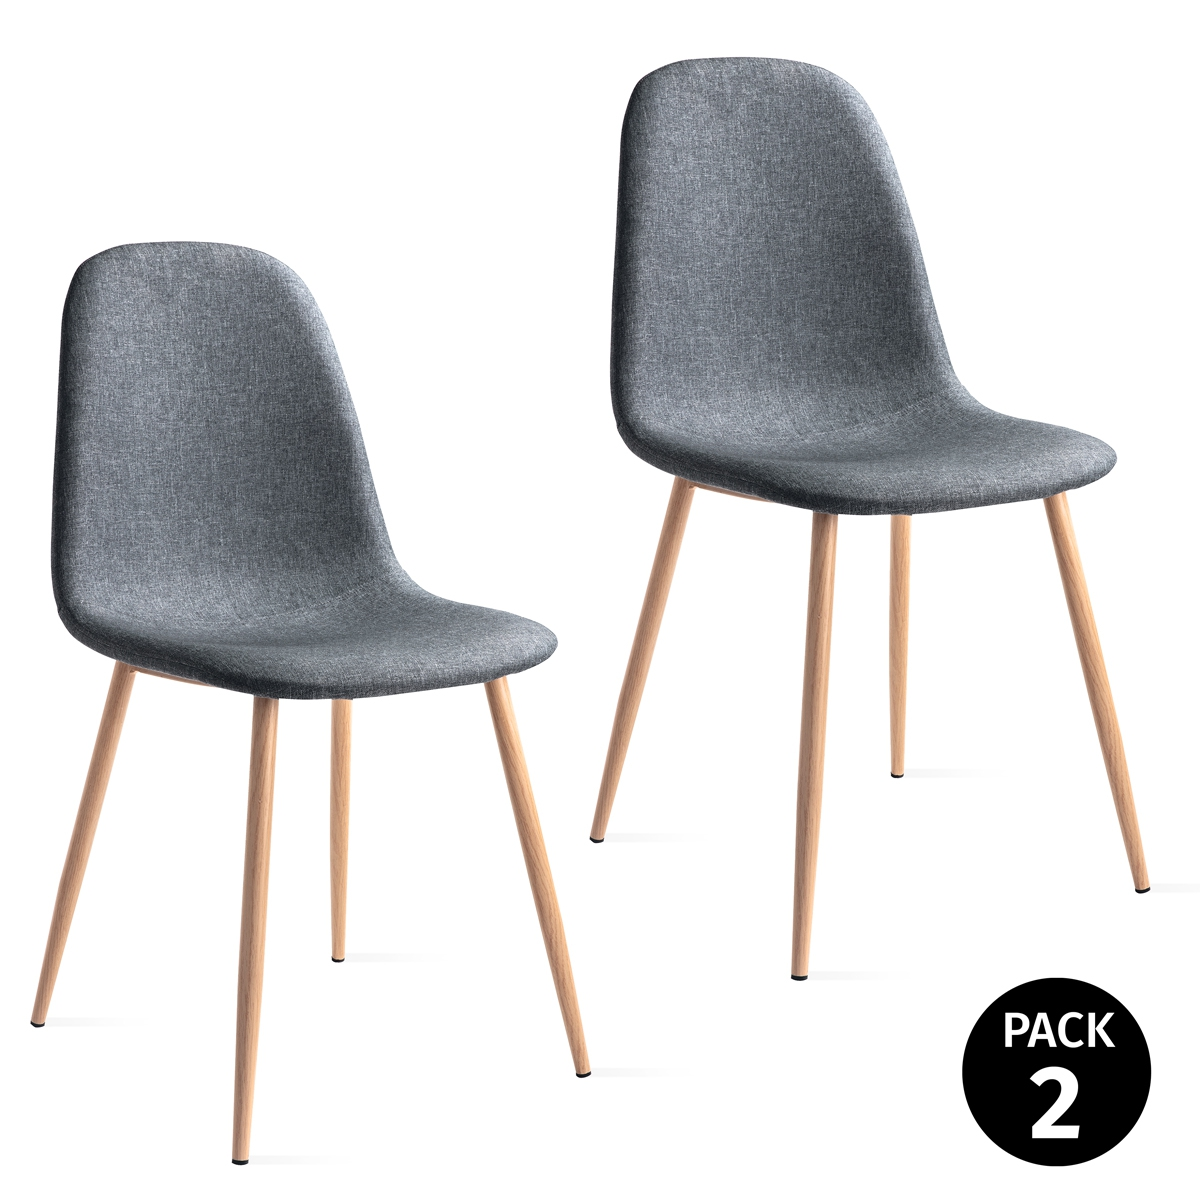 Pack 2 Sillas De Dining Room Scandinavian Fabric Color Grey Pearl, Dining Chairs Padding Structure Metal Effect Wood 46x43x86cm